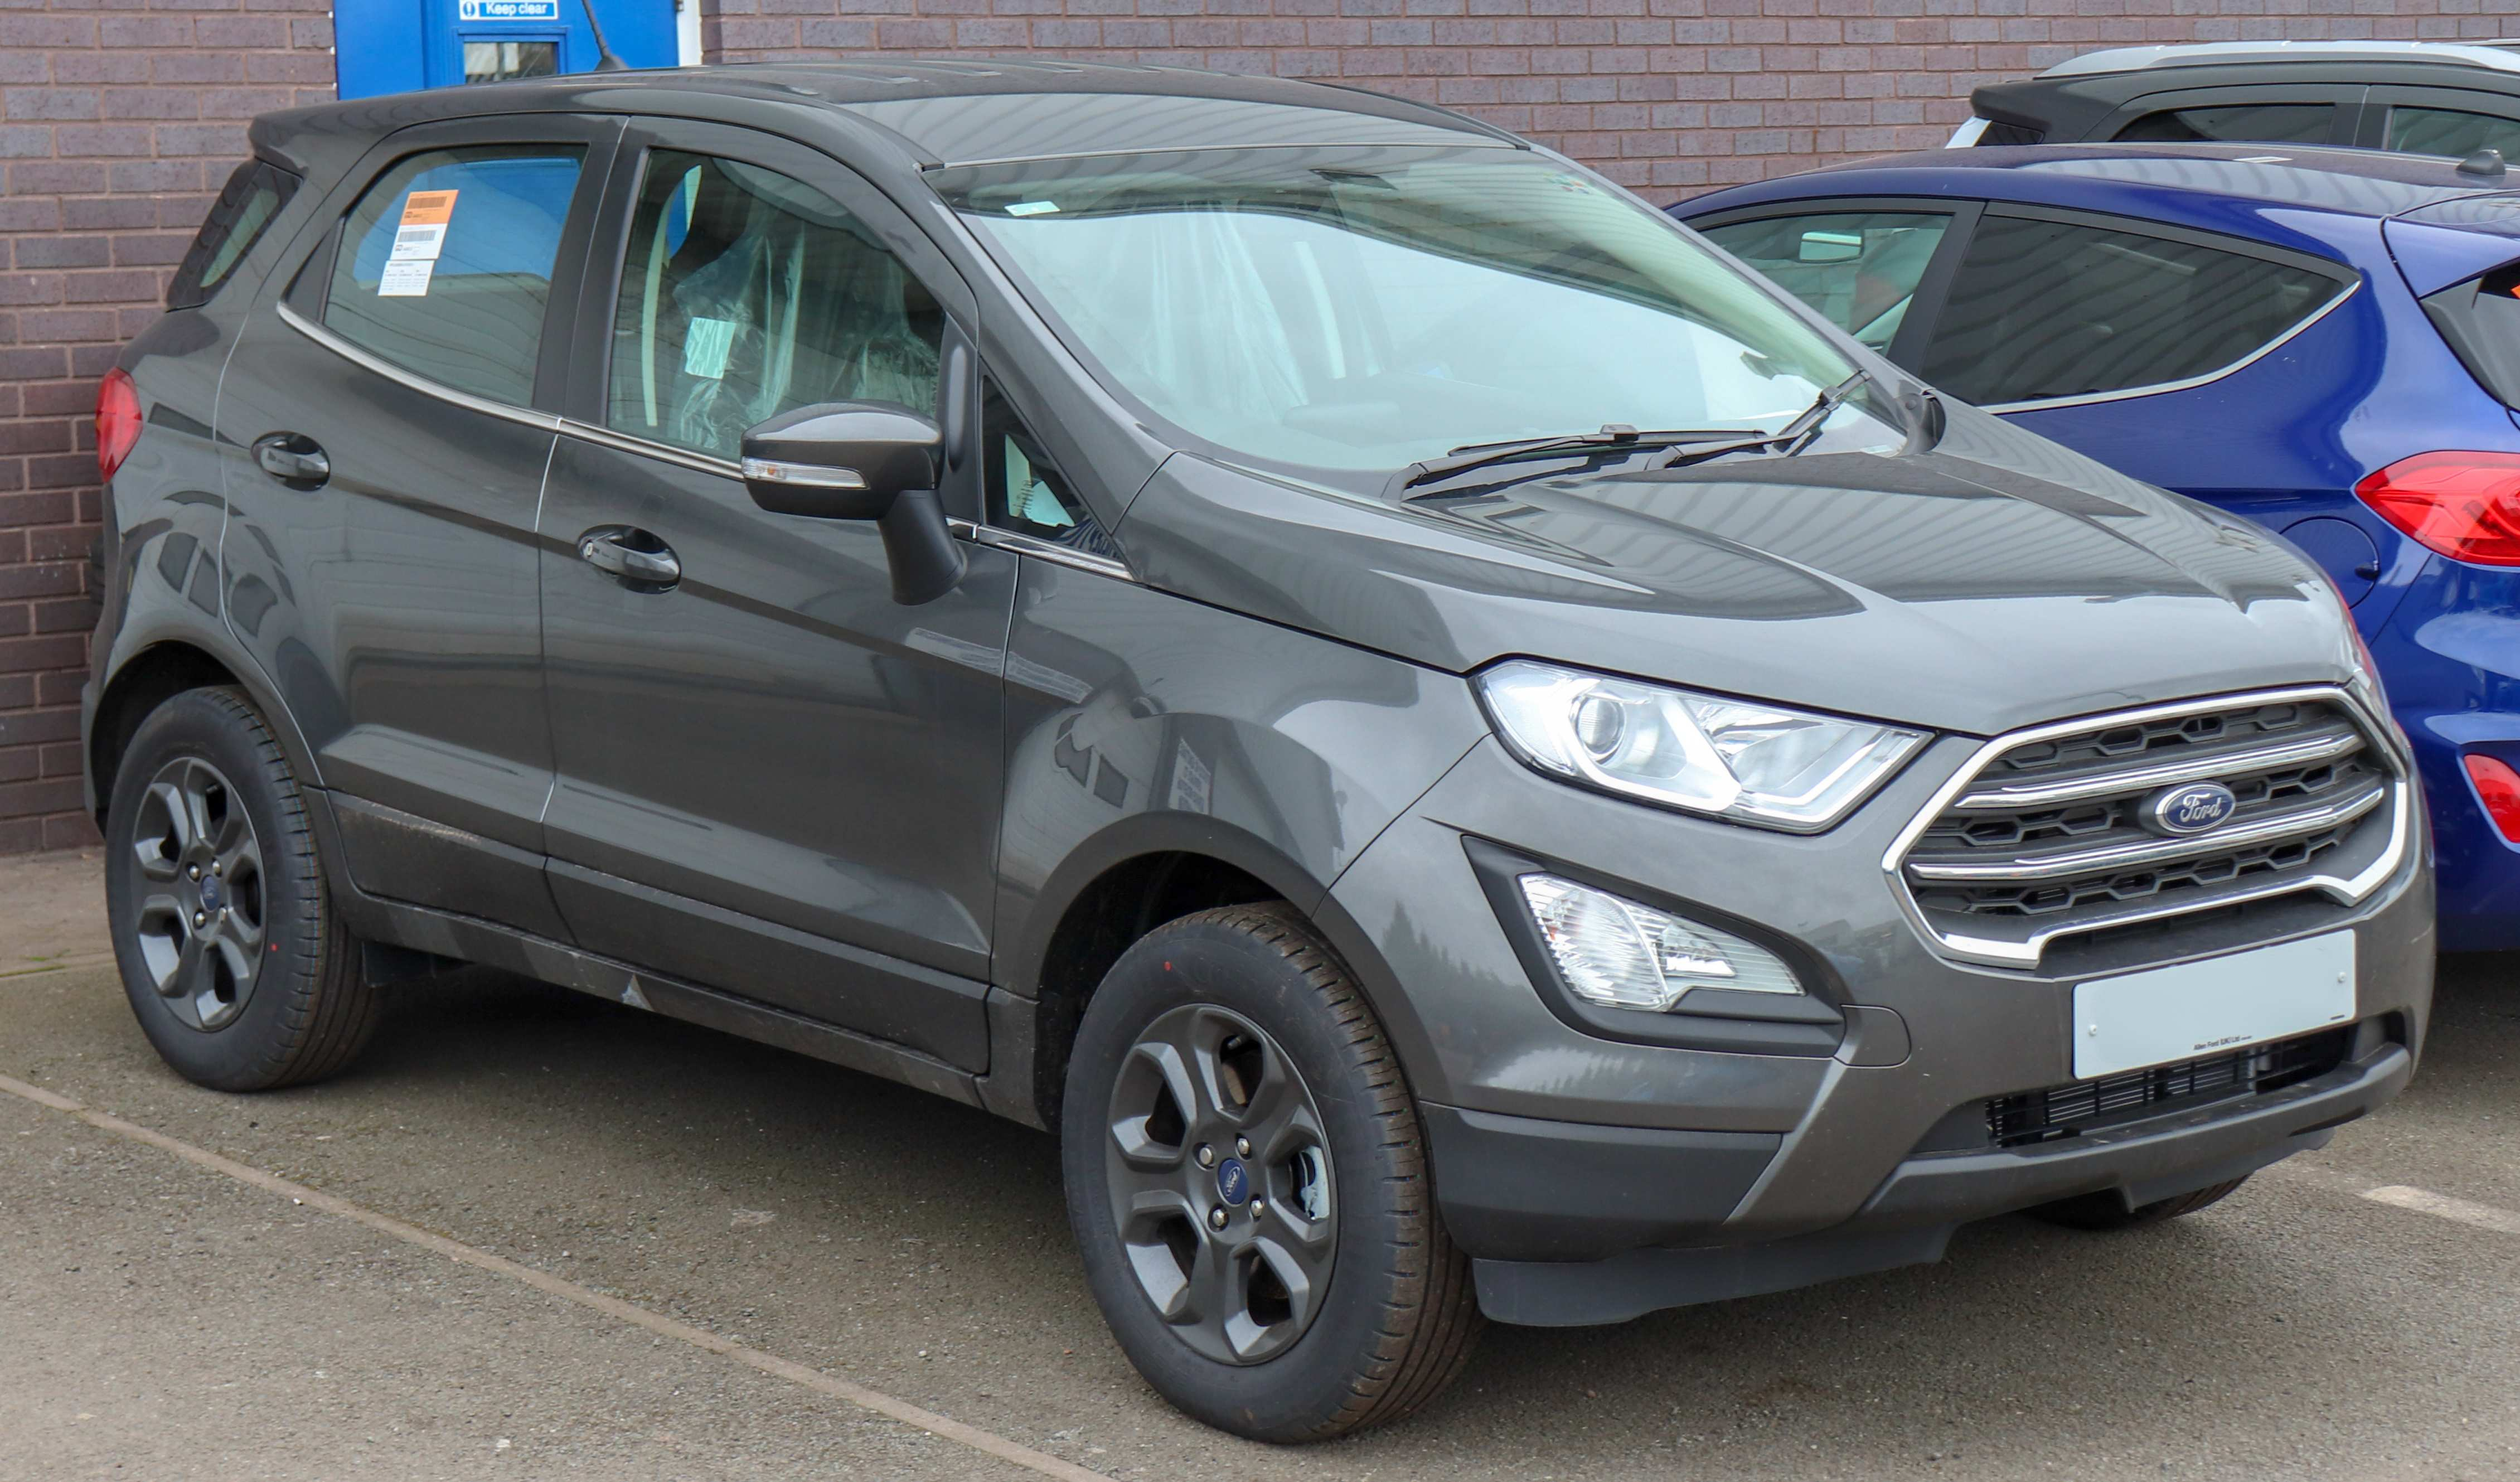 23 All New Ford Kuga 2020 Dimensions Review And Release Date